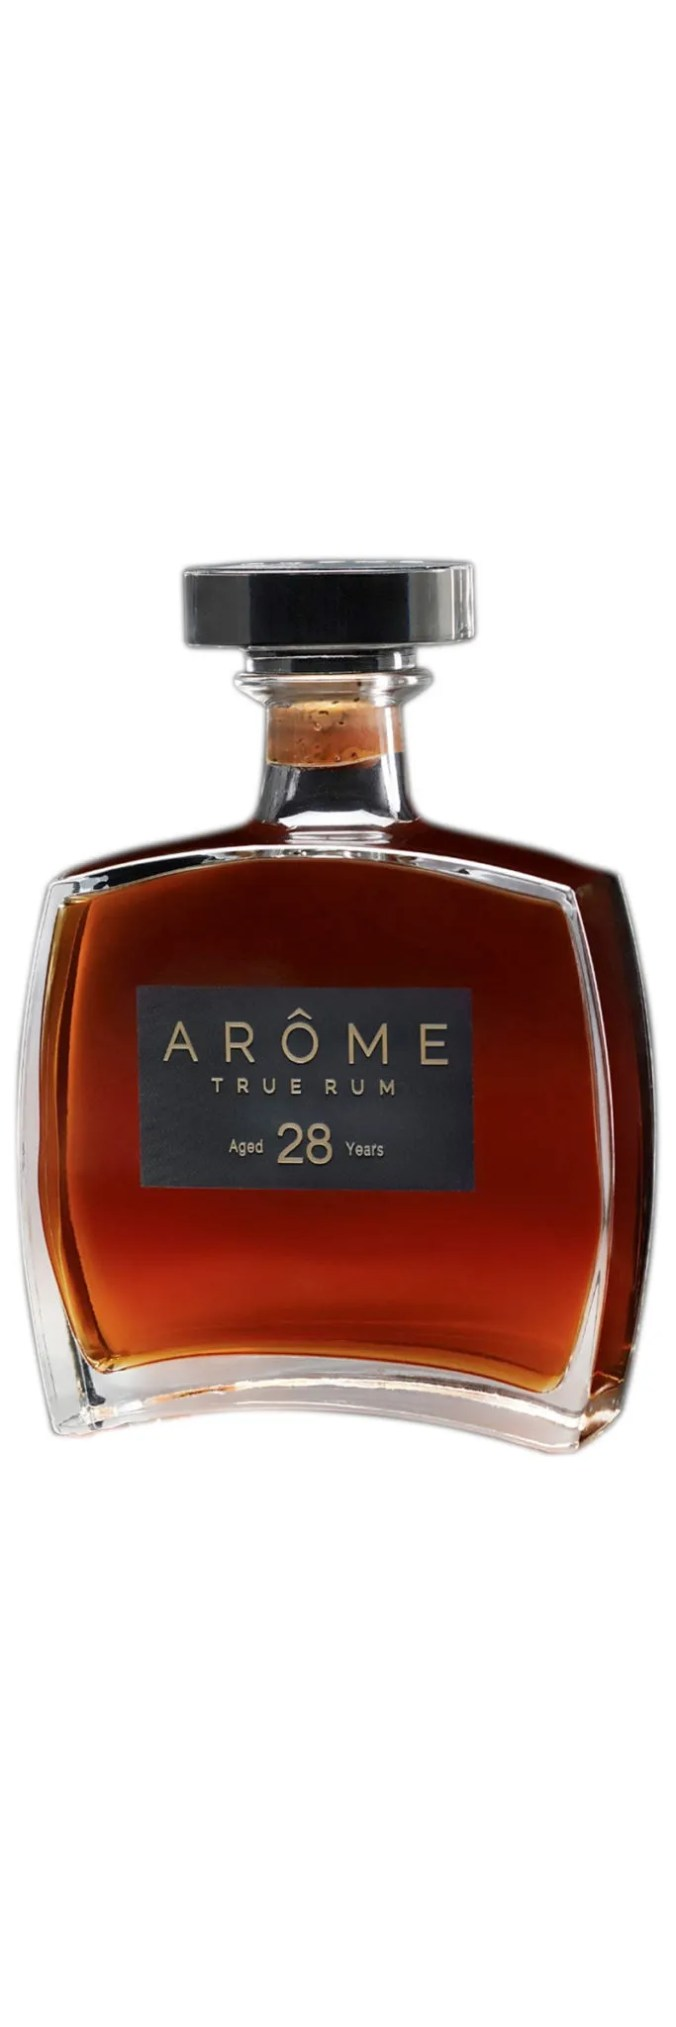 Rum Arôme, Rum Arome, luxury rum, limited edition, Panama